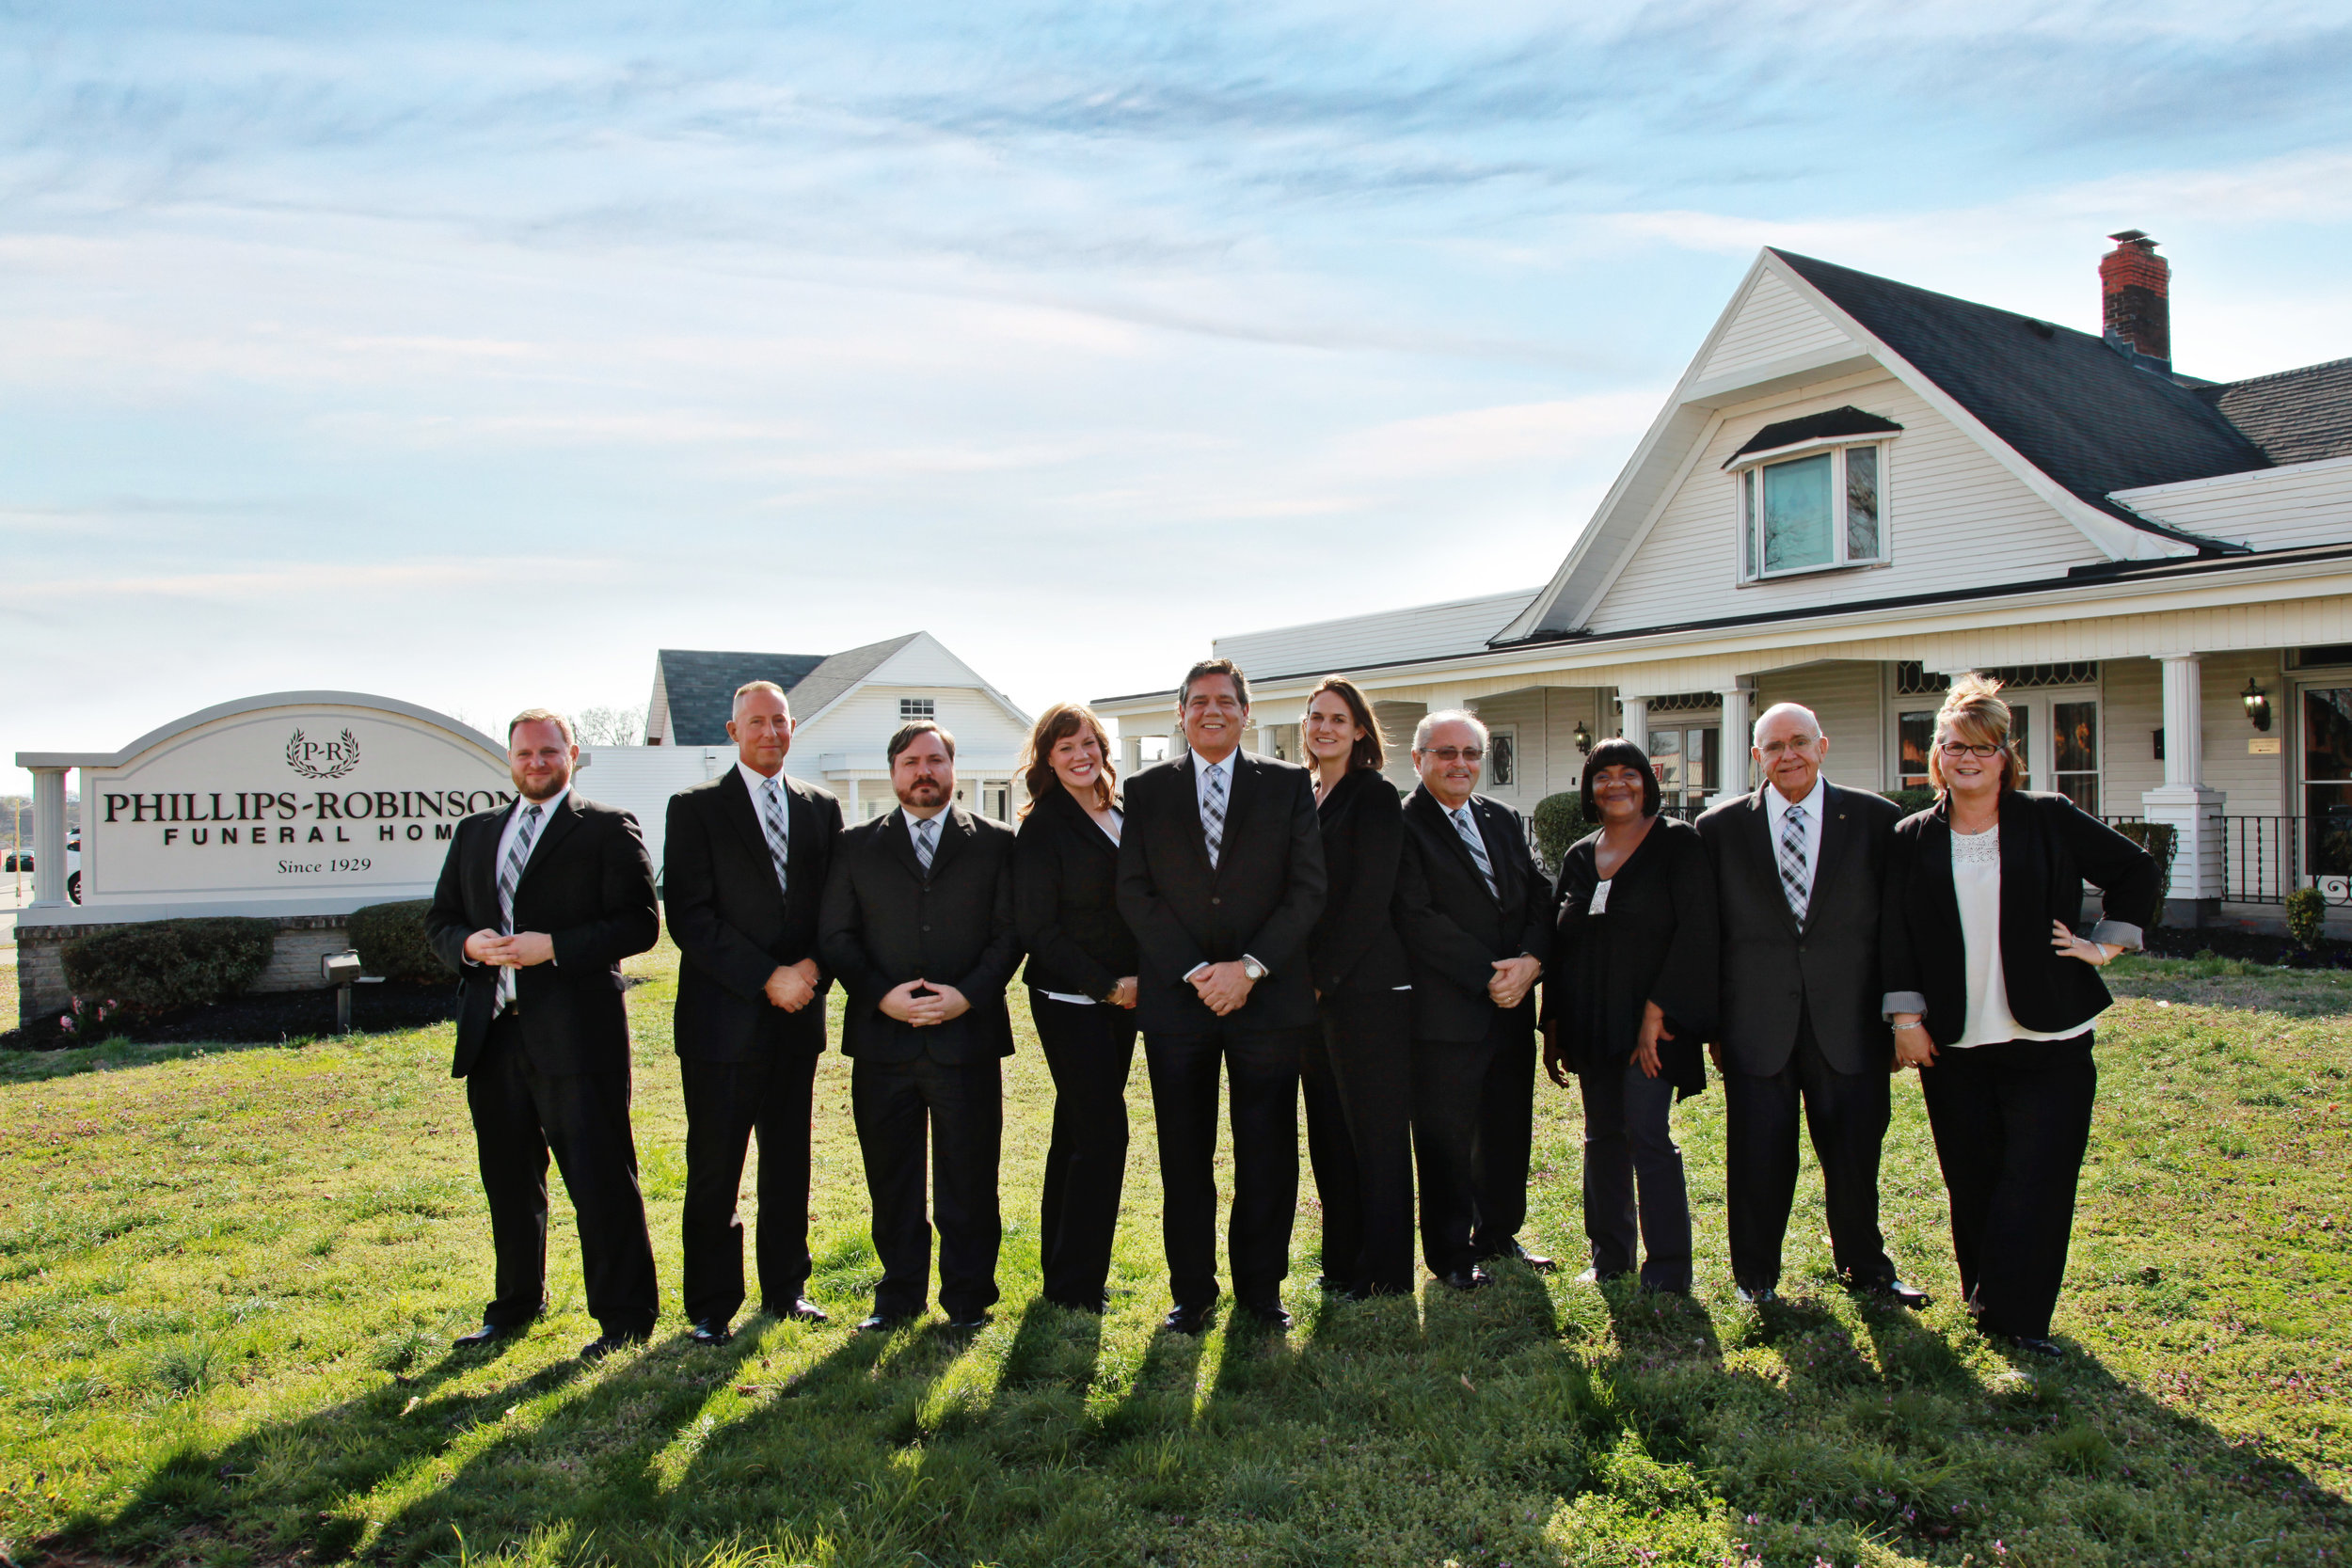 Phillips-Robinson-Funeral-Home-Group-Shot-MsDigPhoto